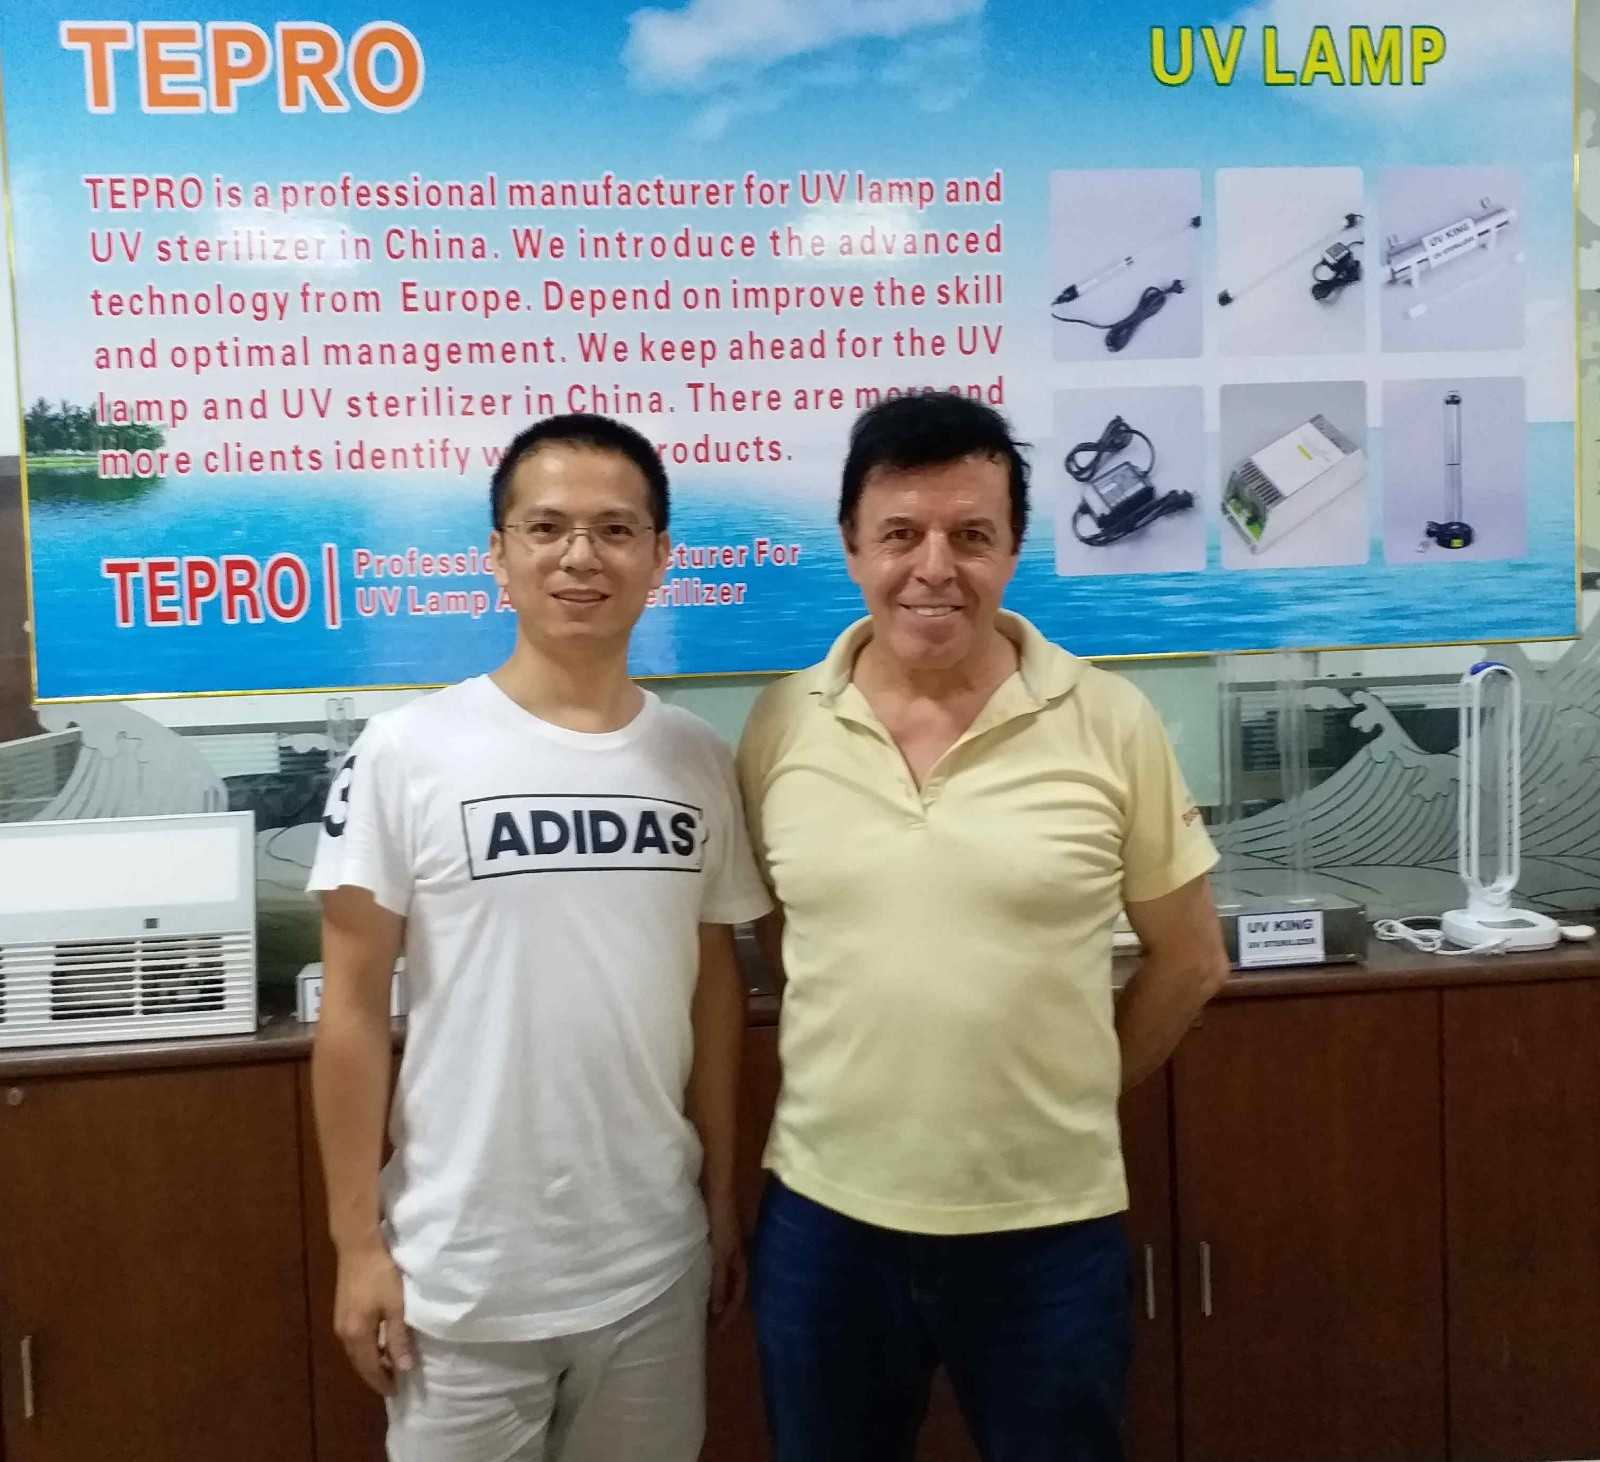 Tepro-Uv Light At Home Factory, Uv Lamp Suppliers | Tepro